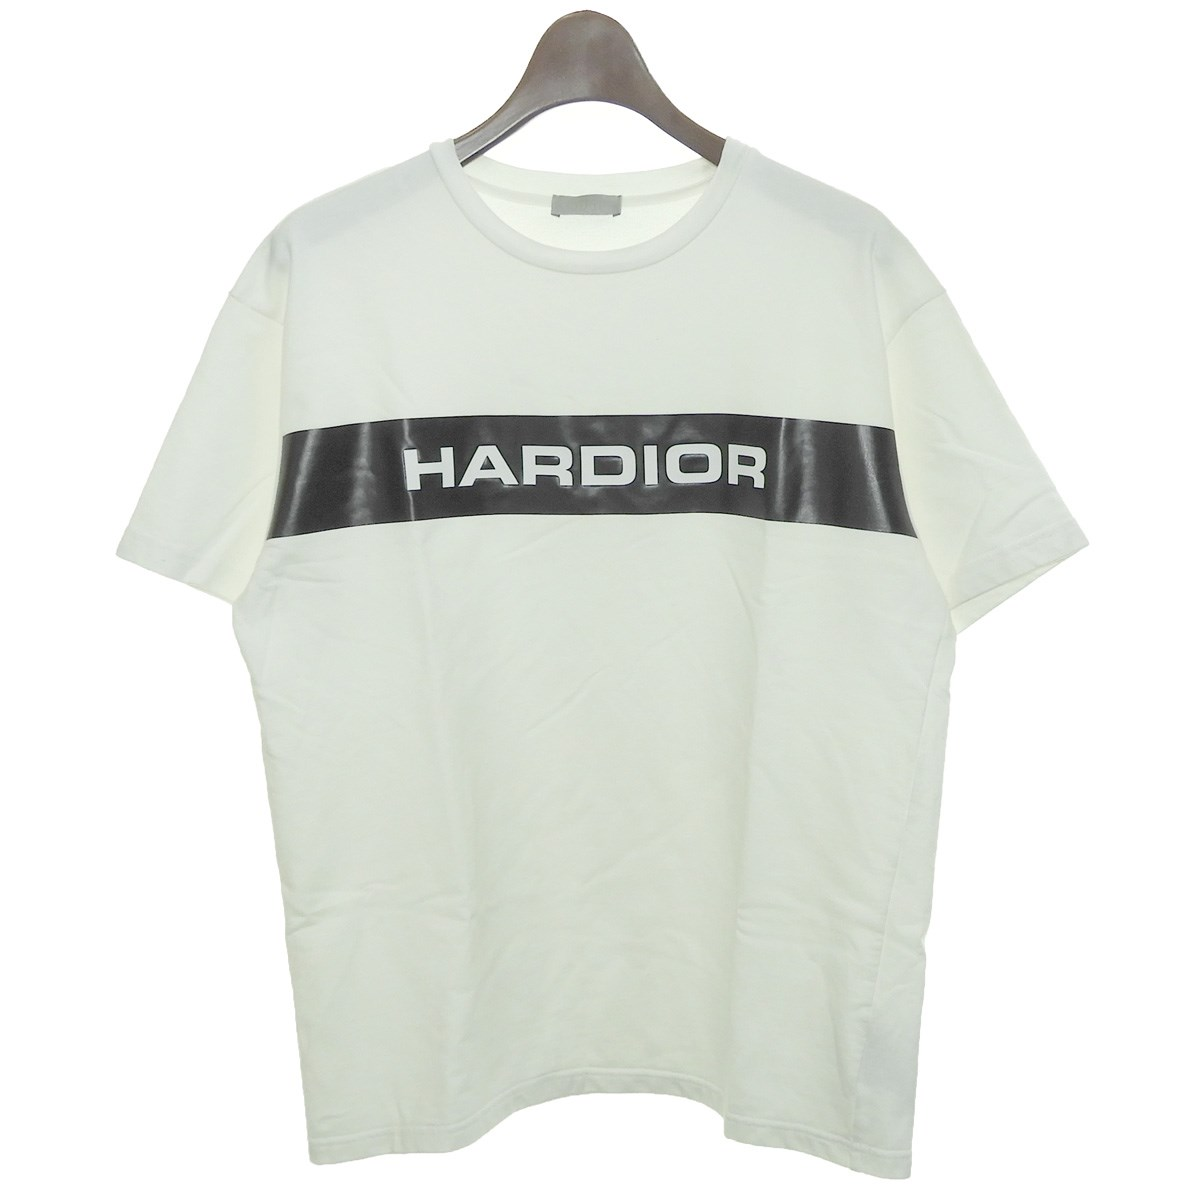 finest selection ea0f5 8b2a4 Dior Homme 2018SS HARDIOR print T-shirt white size: XXS (ディオールオム)